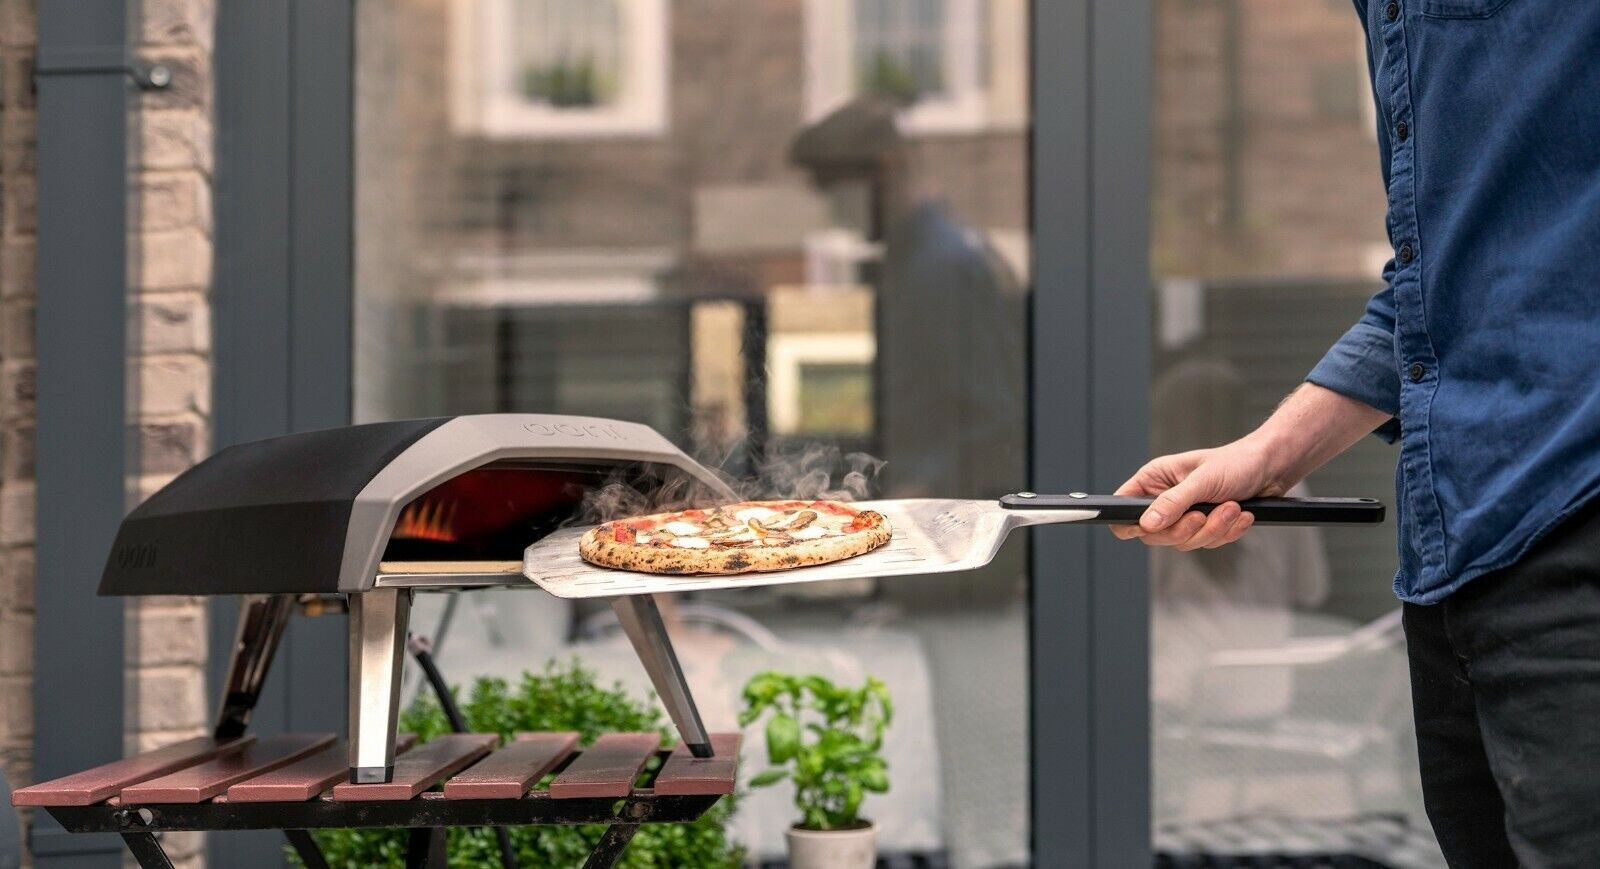 OONI Koda Gas Pizza Oven- Easy To Use Cooks Pizza In 60 Seco